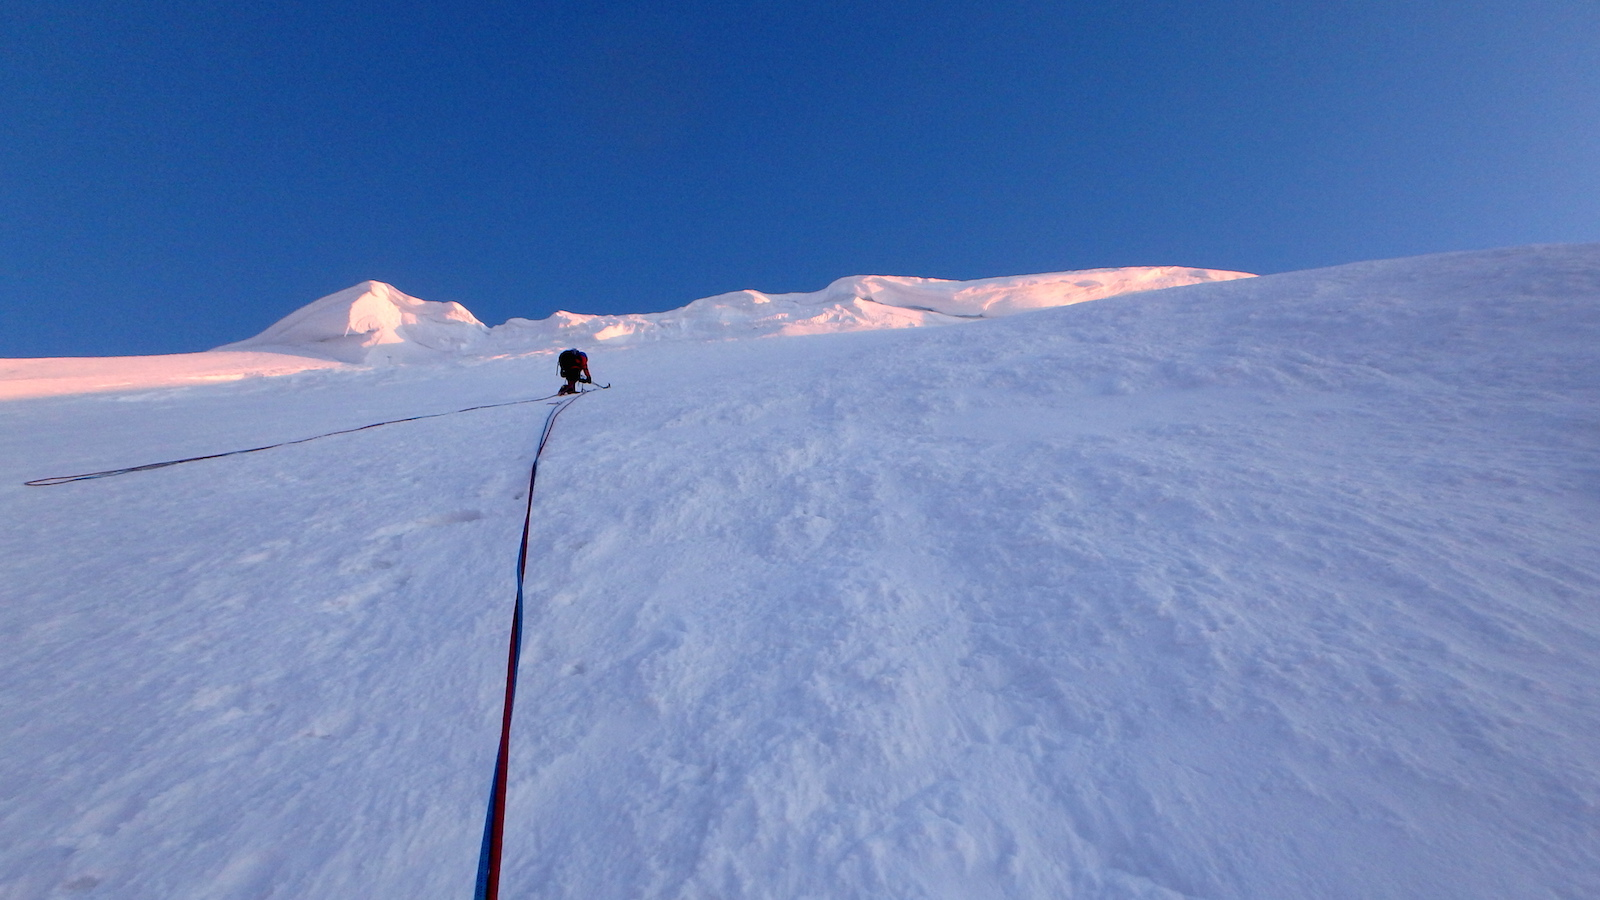 Martinez climbs snow slopes below Mt. Malaspina's East Col. [Photos] Natalia Martinez, Camilo Rada